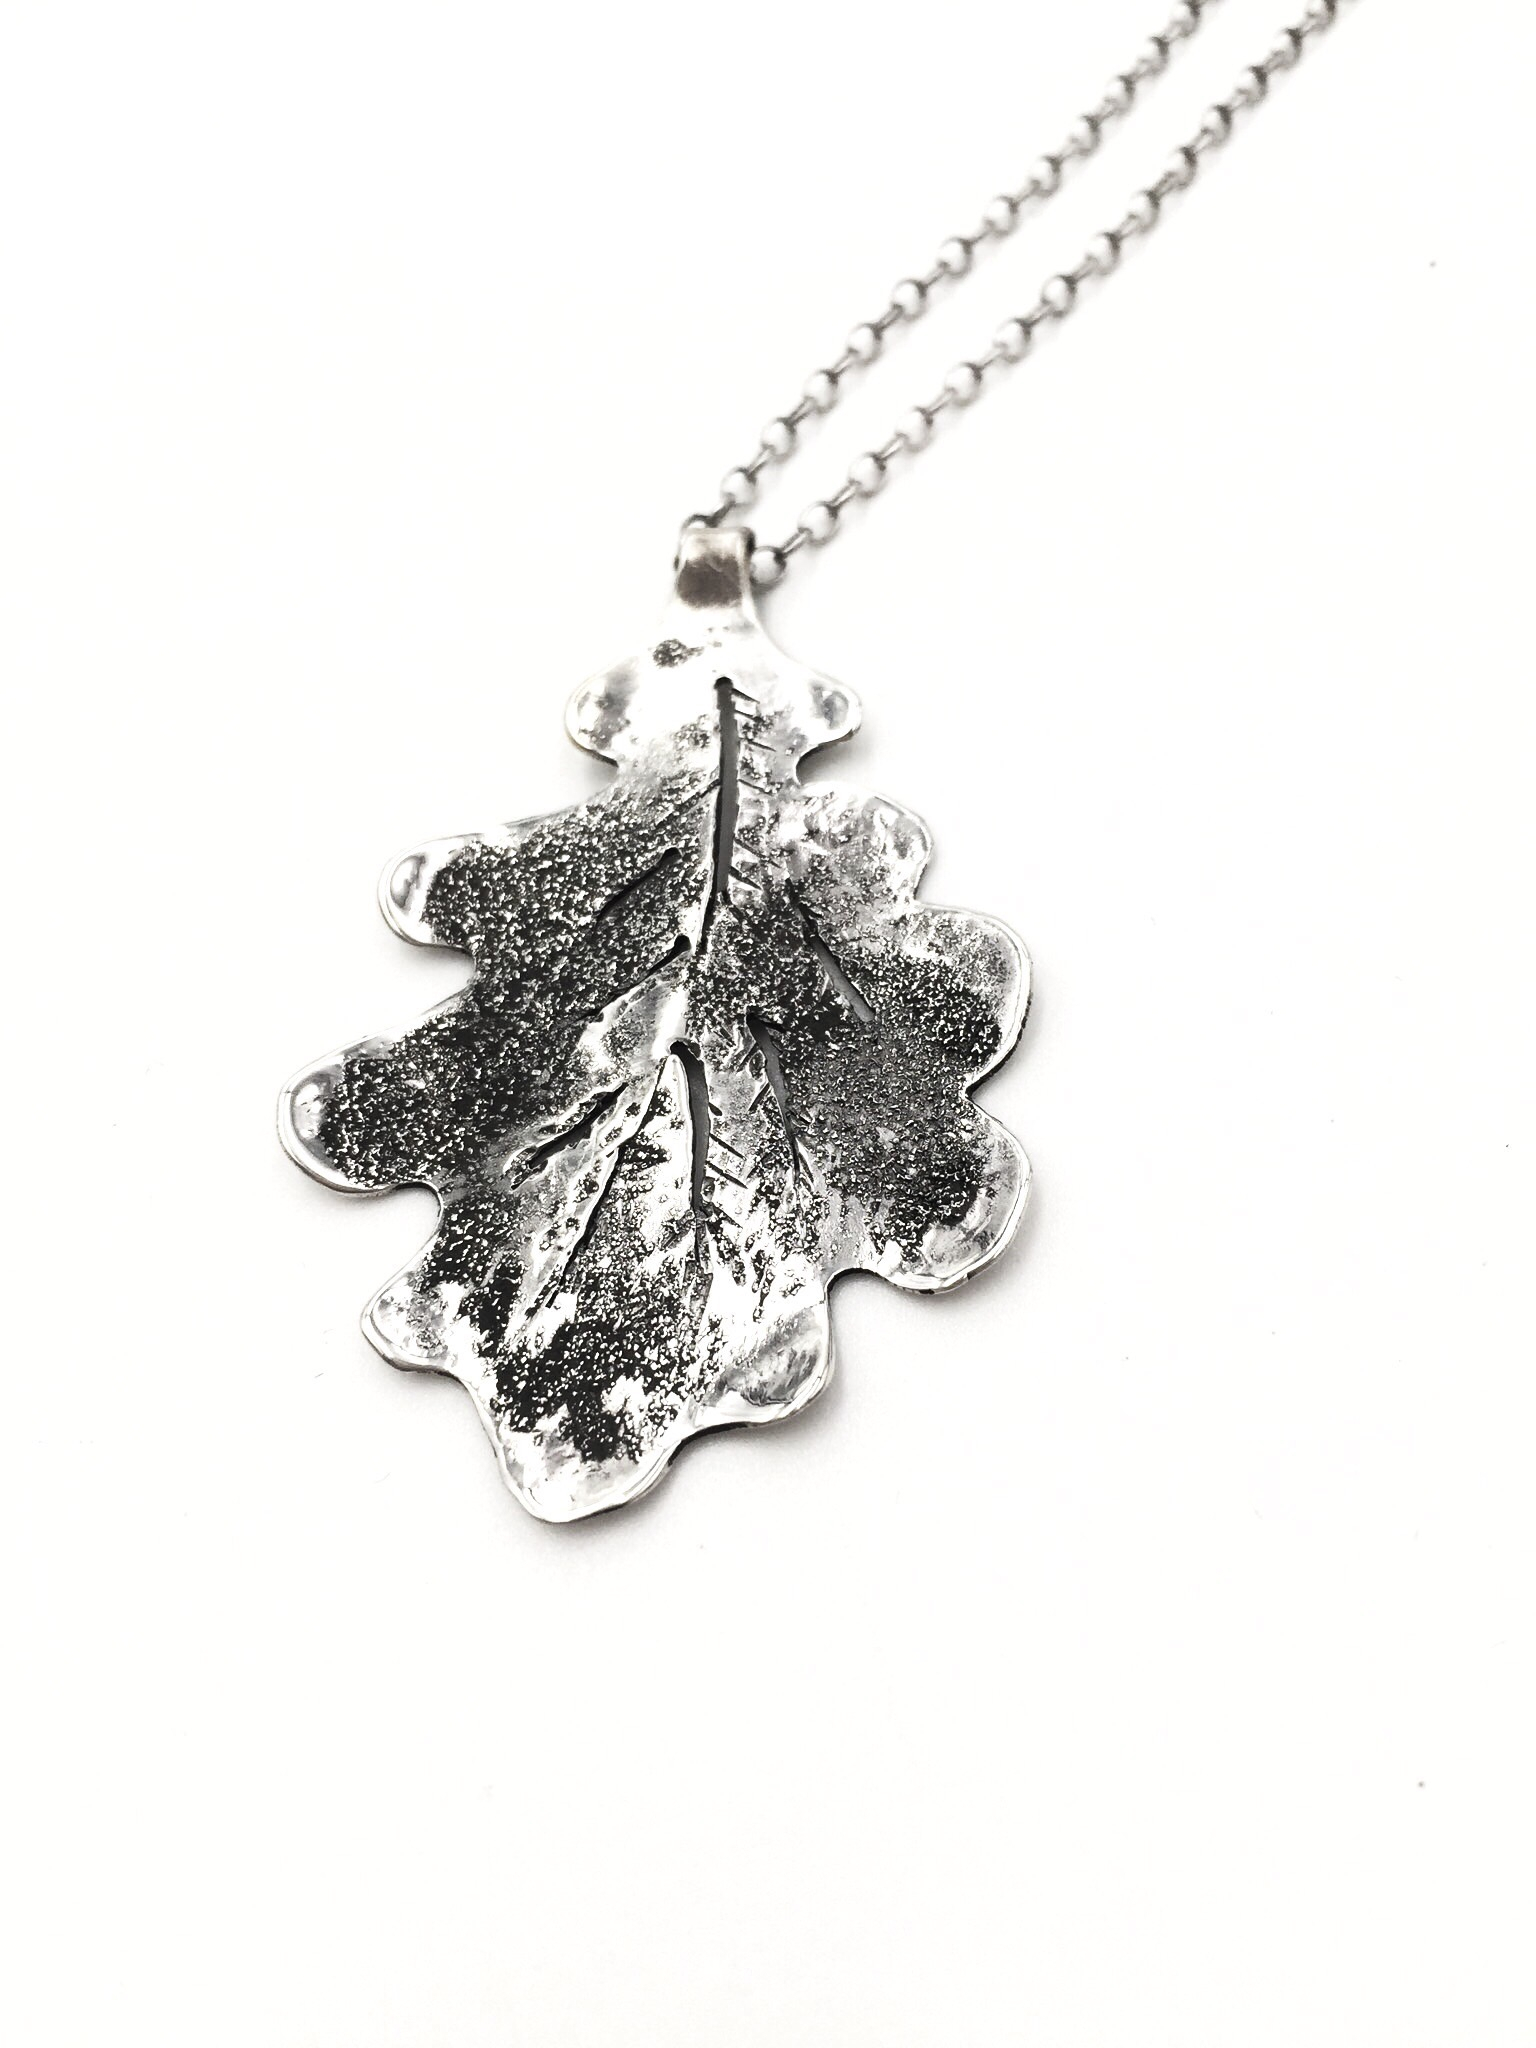 Oak Necklace With Regard To Best And Newest Shining Leaf Pendant Necklaces (Gallery 22 of 25)